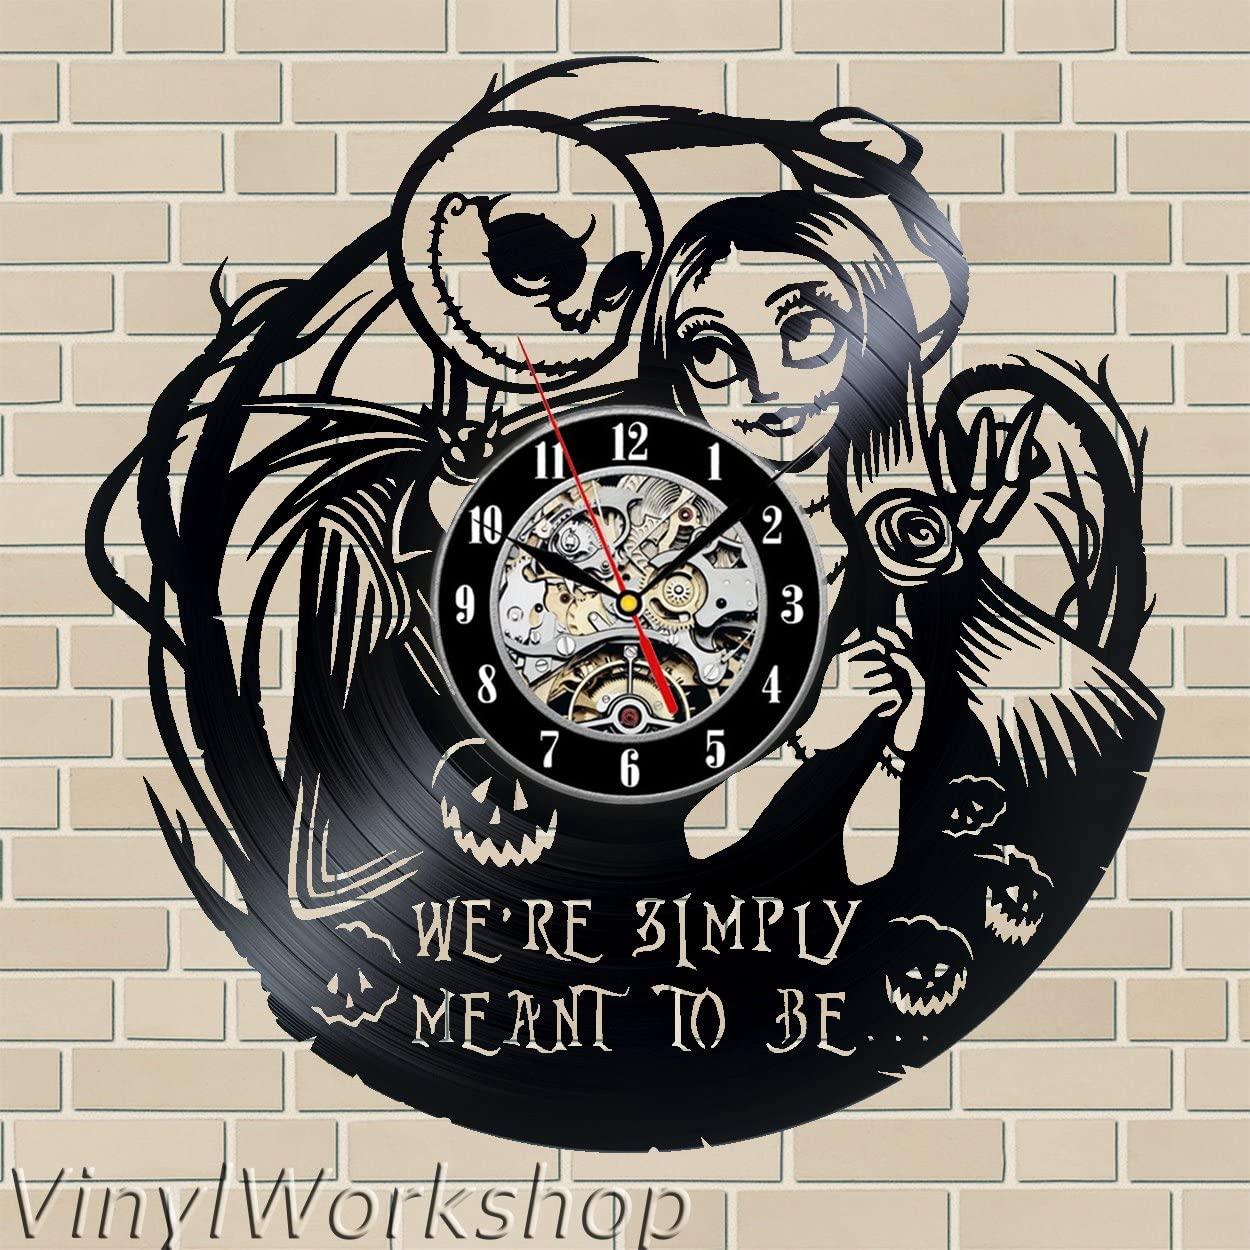 The Nightmare Before Christmas Vinyl Wall Clock 12 in 30cm Black Decor Modern Decorative Vinyl Record Wall Clock This Clock is A Unique Gift to Your Friends and Family for Any Occasion